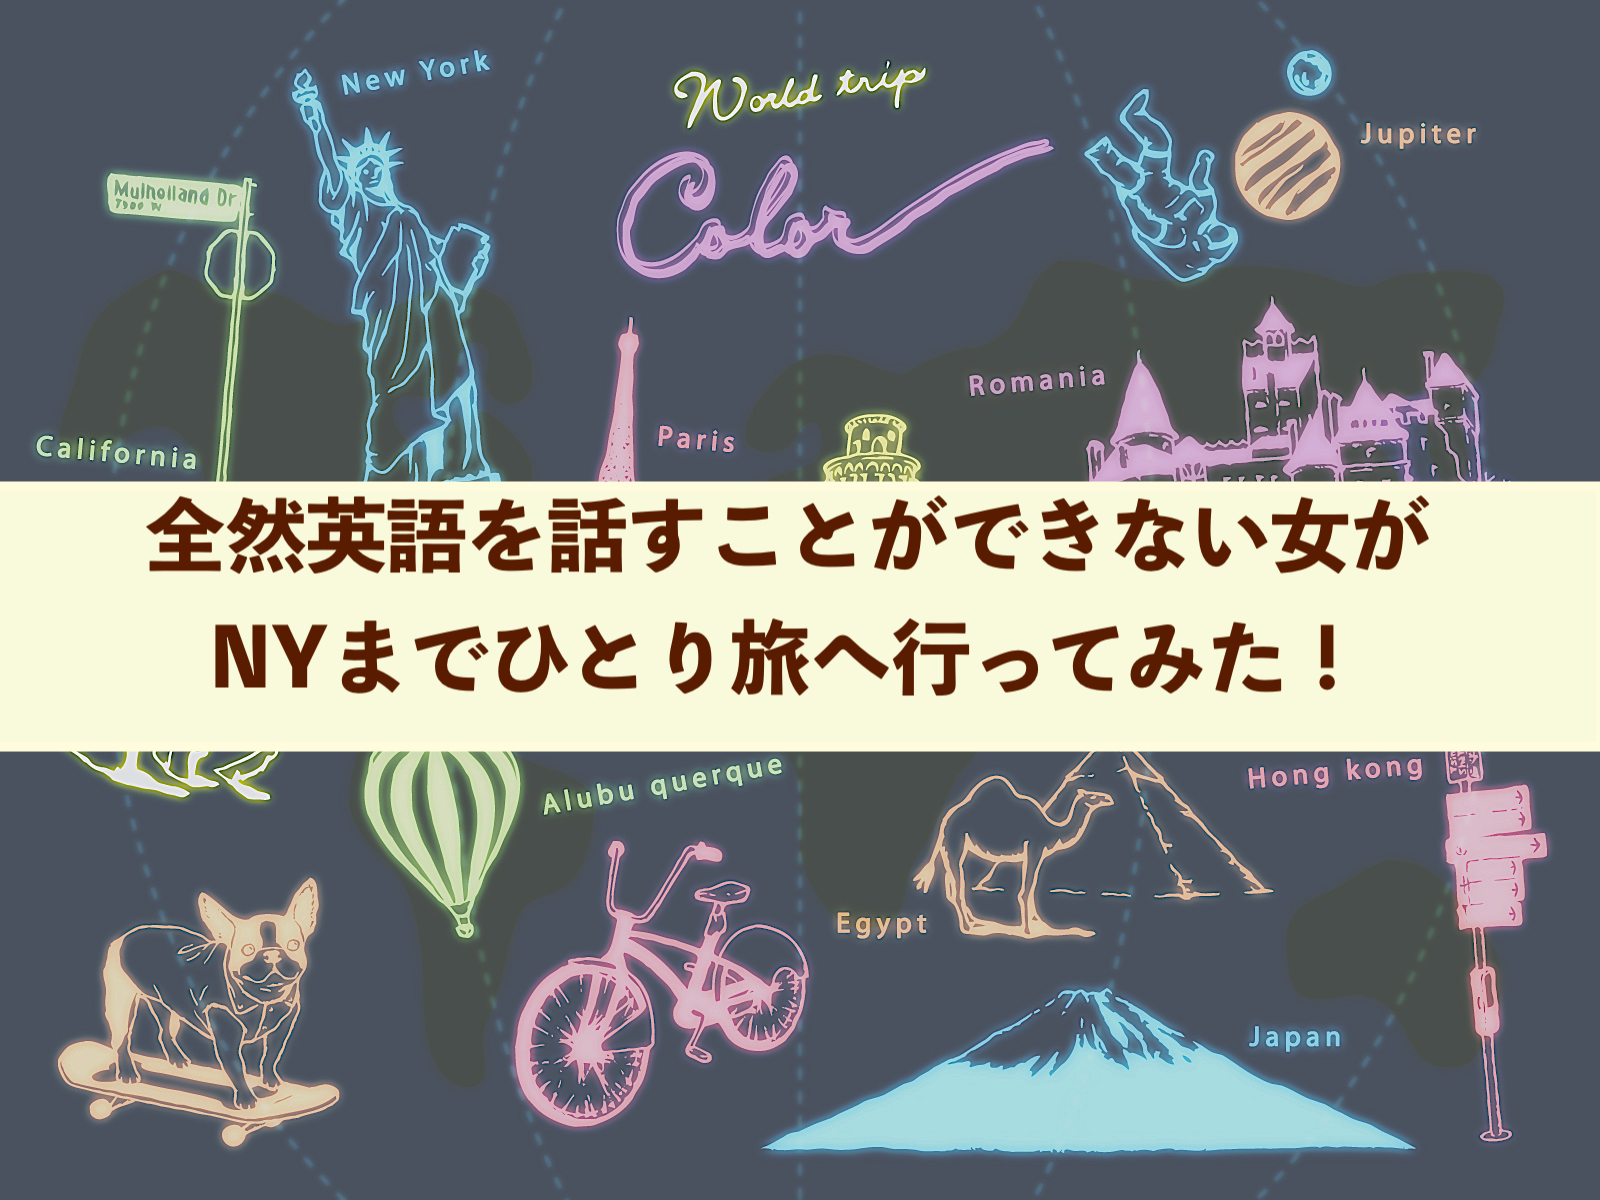 NY女ひとり旅